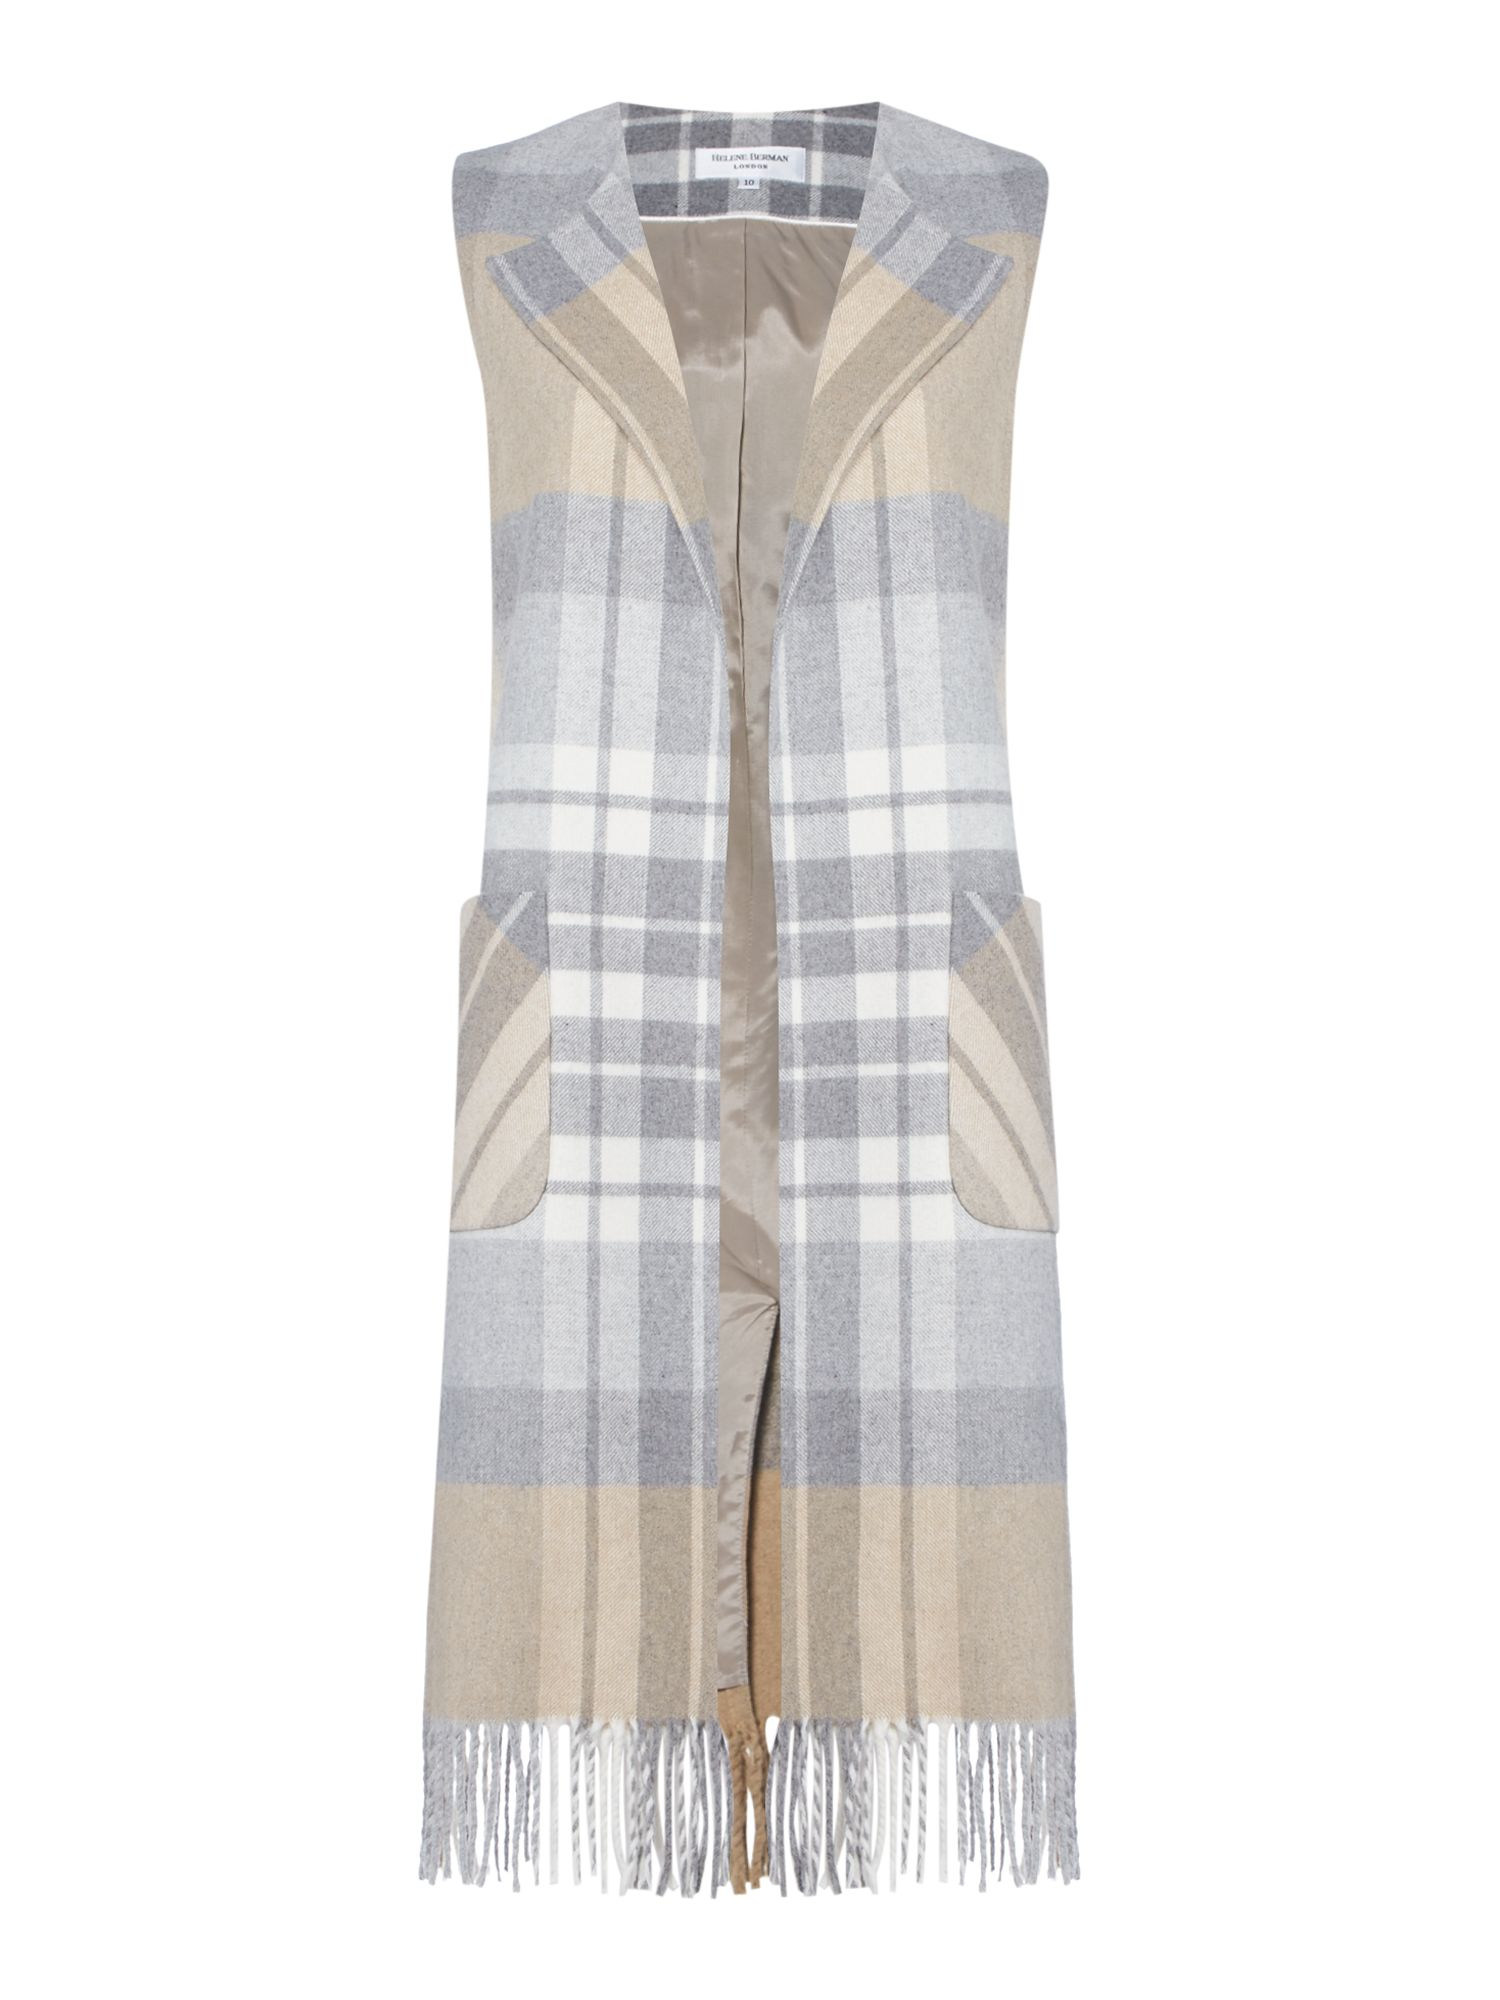 Linea Made in britain blanket check waistcoat, Multi-Coloured